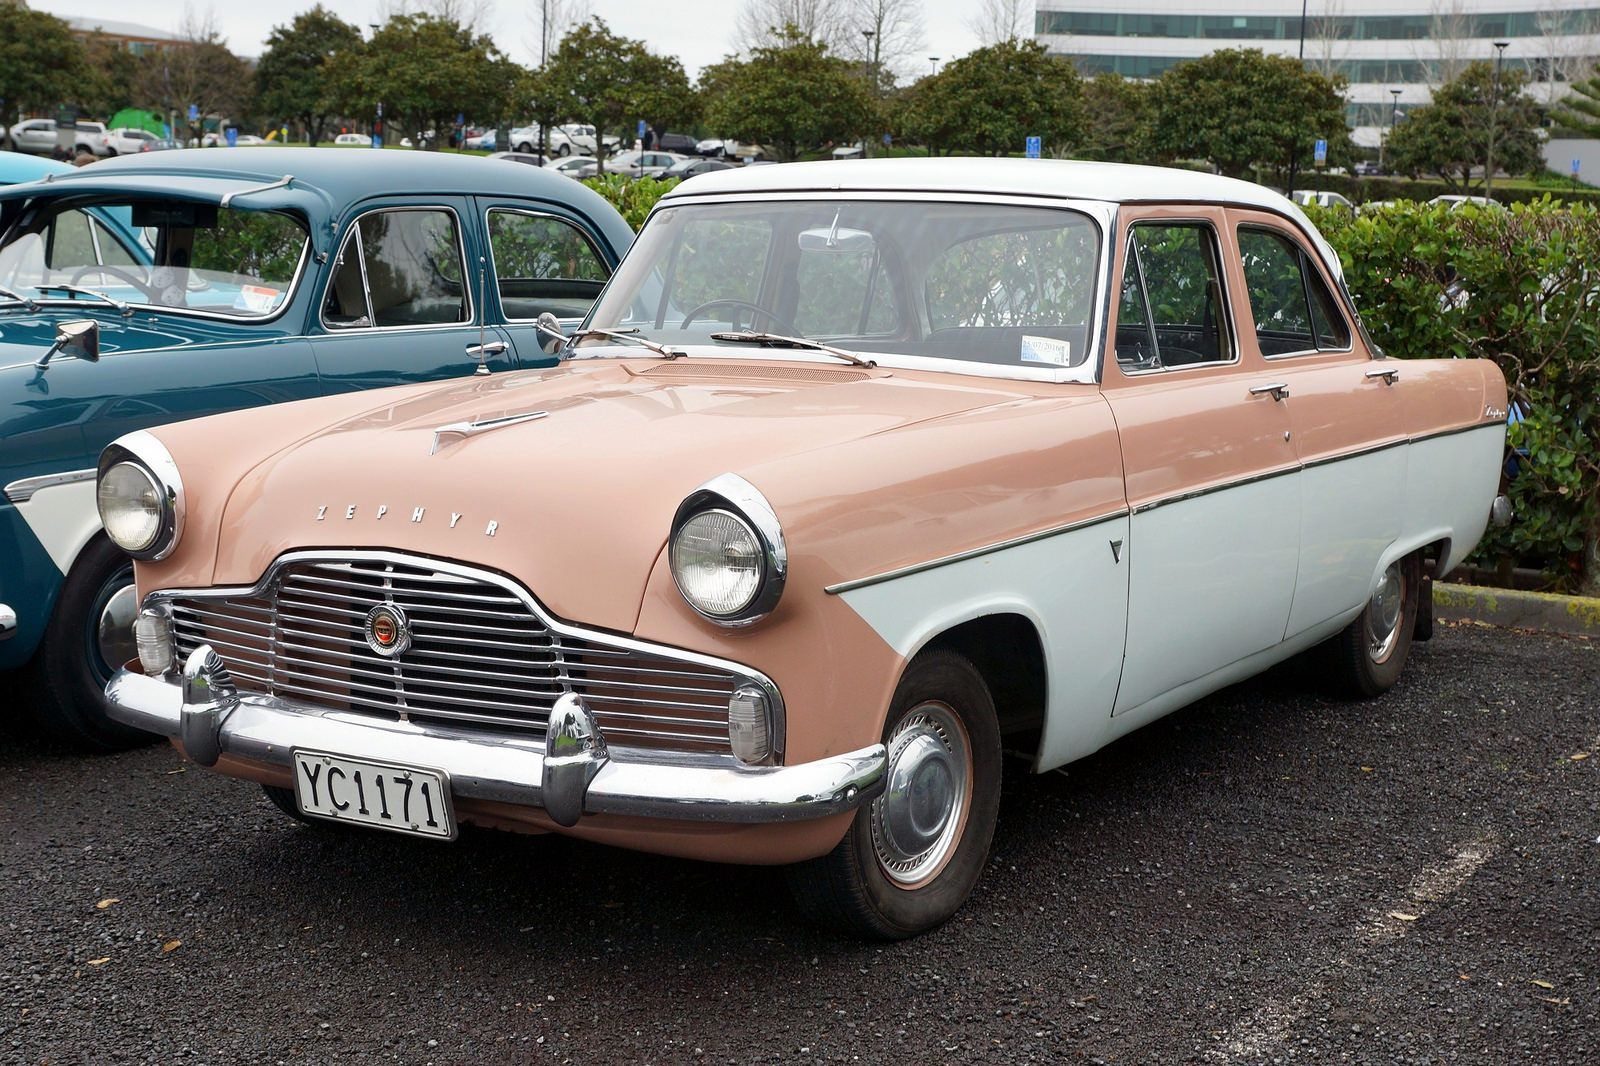 1960 Ford Zephyr Classic Cars British Ford Zephyr Classic Cars